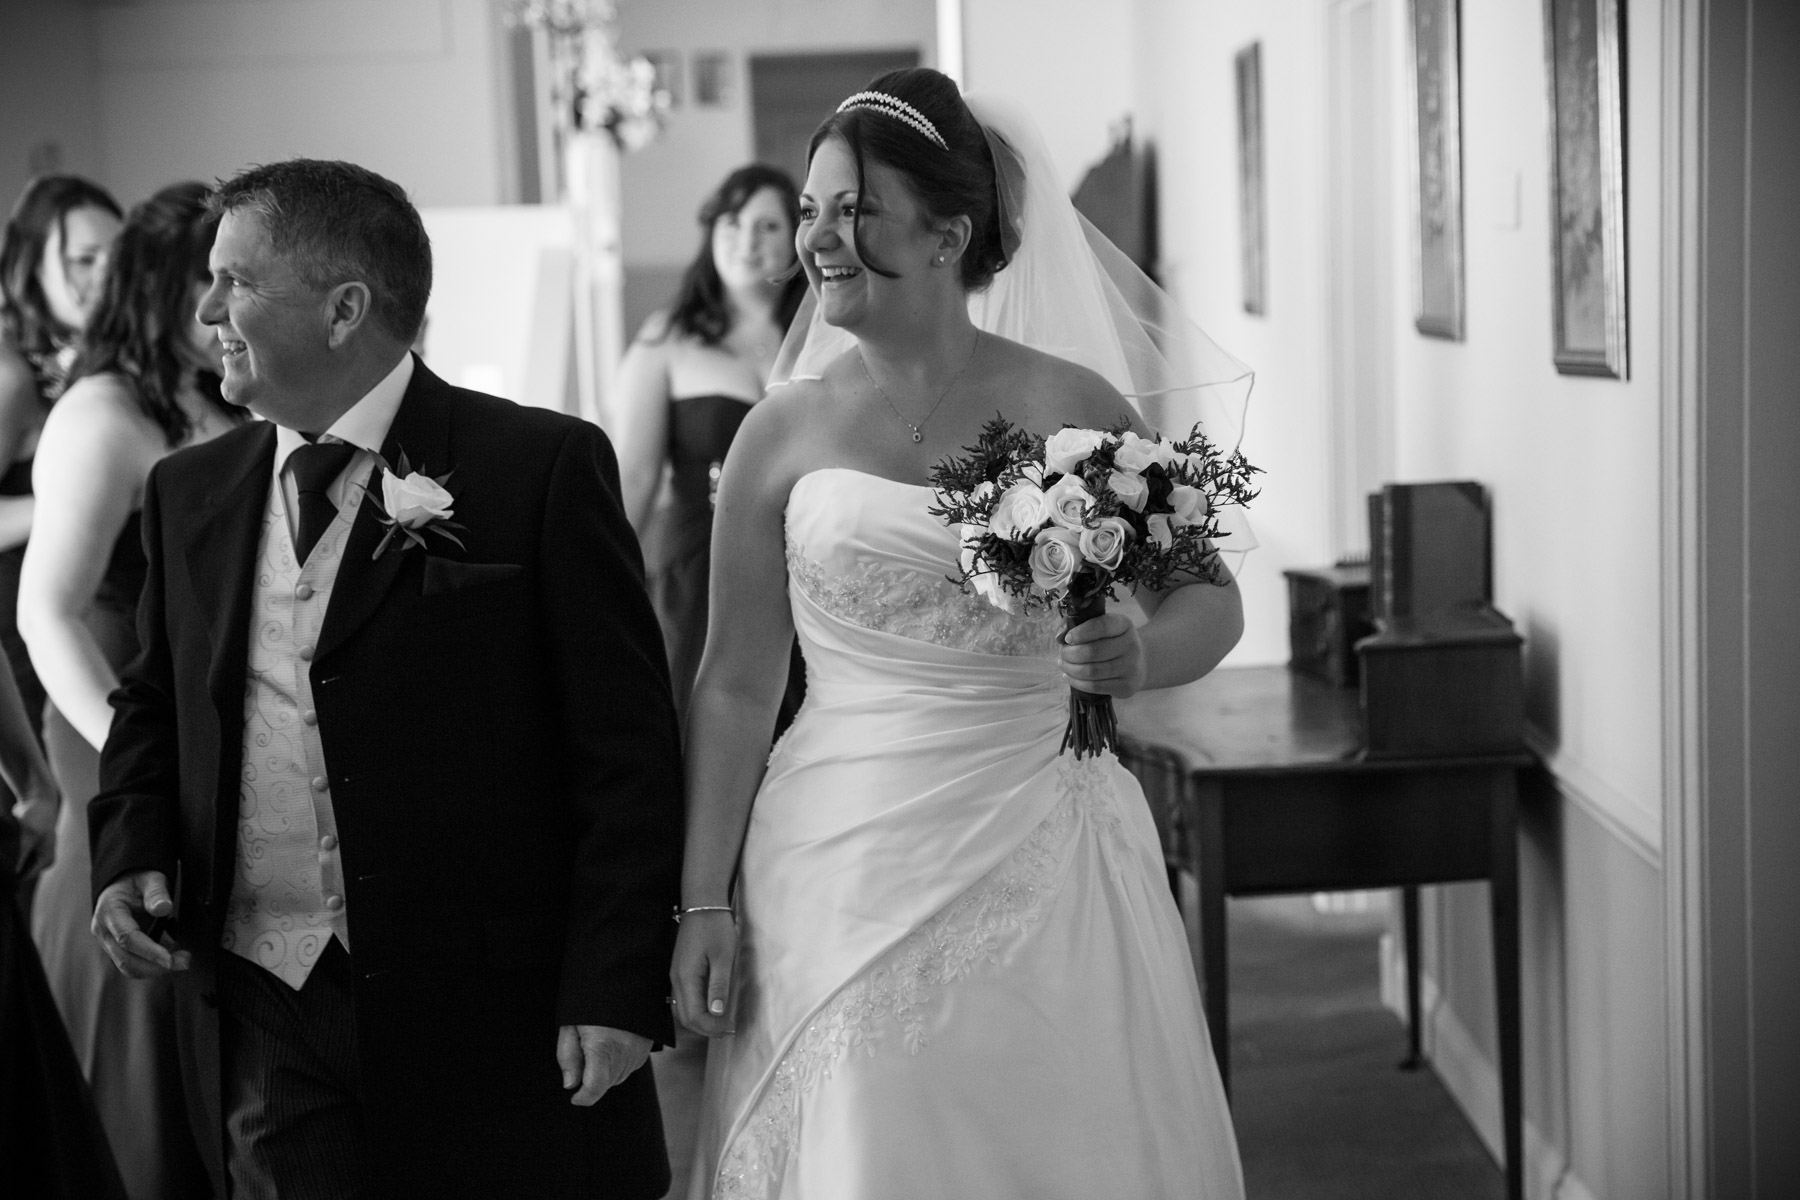 Sussex Documentary Wedding Photography by Richard Murgatroyd (2)